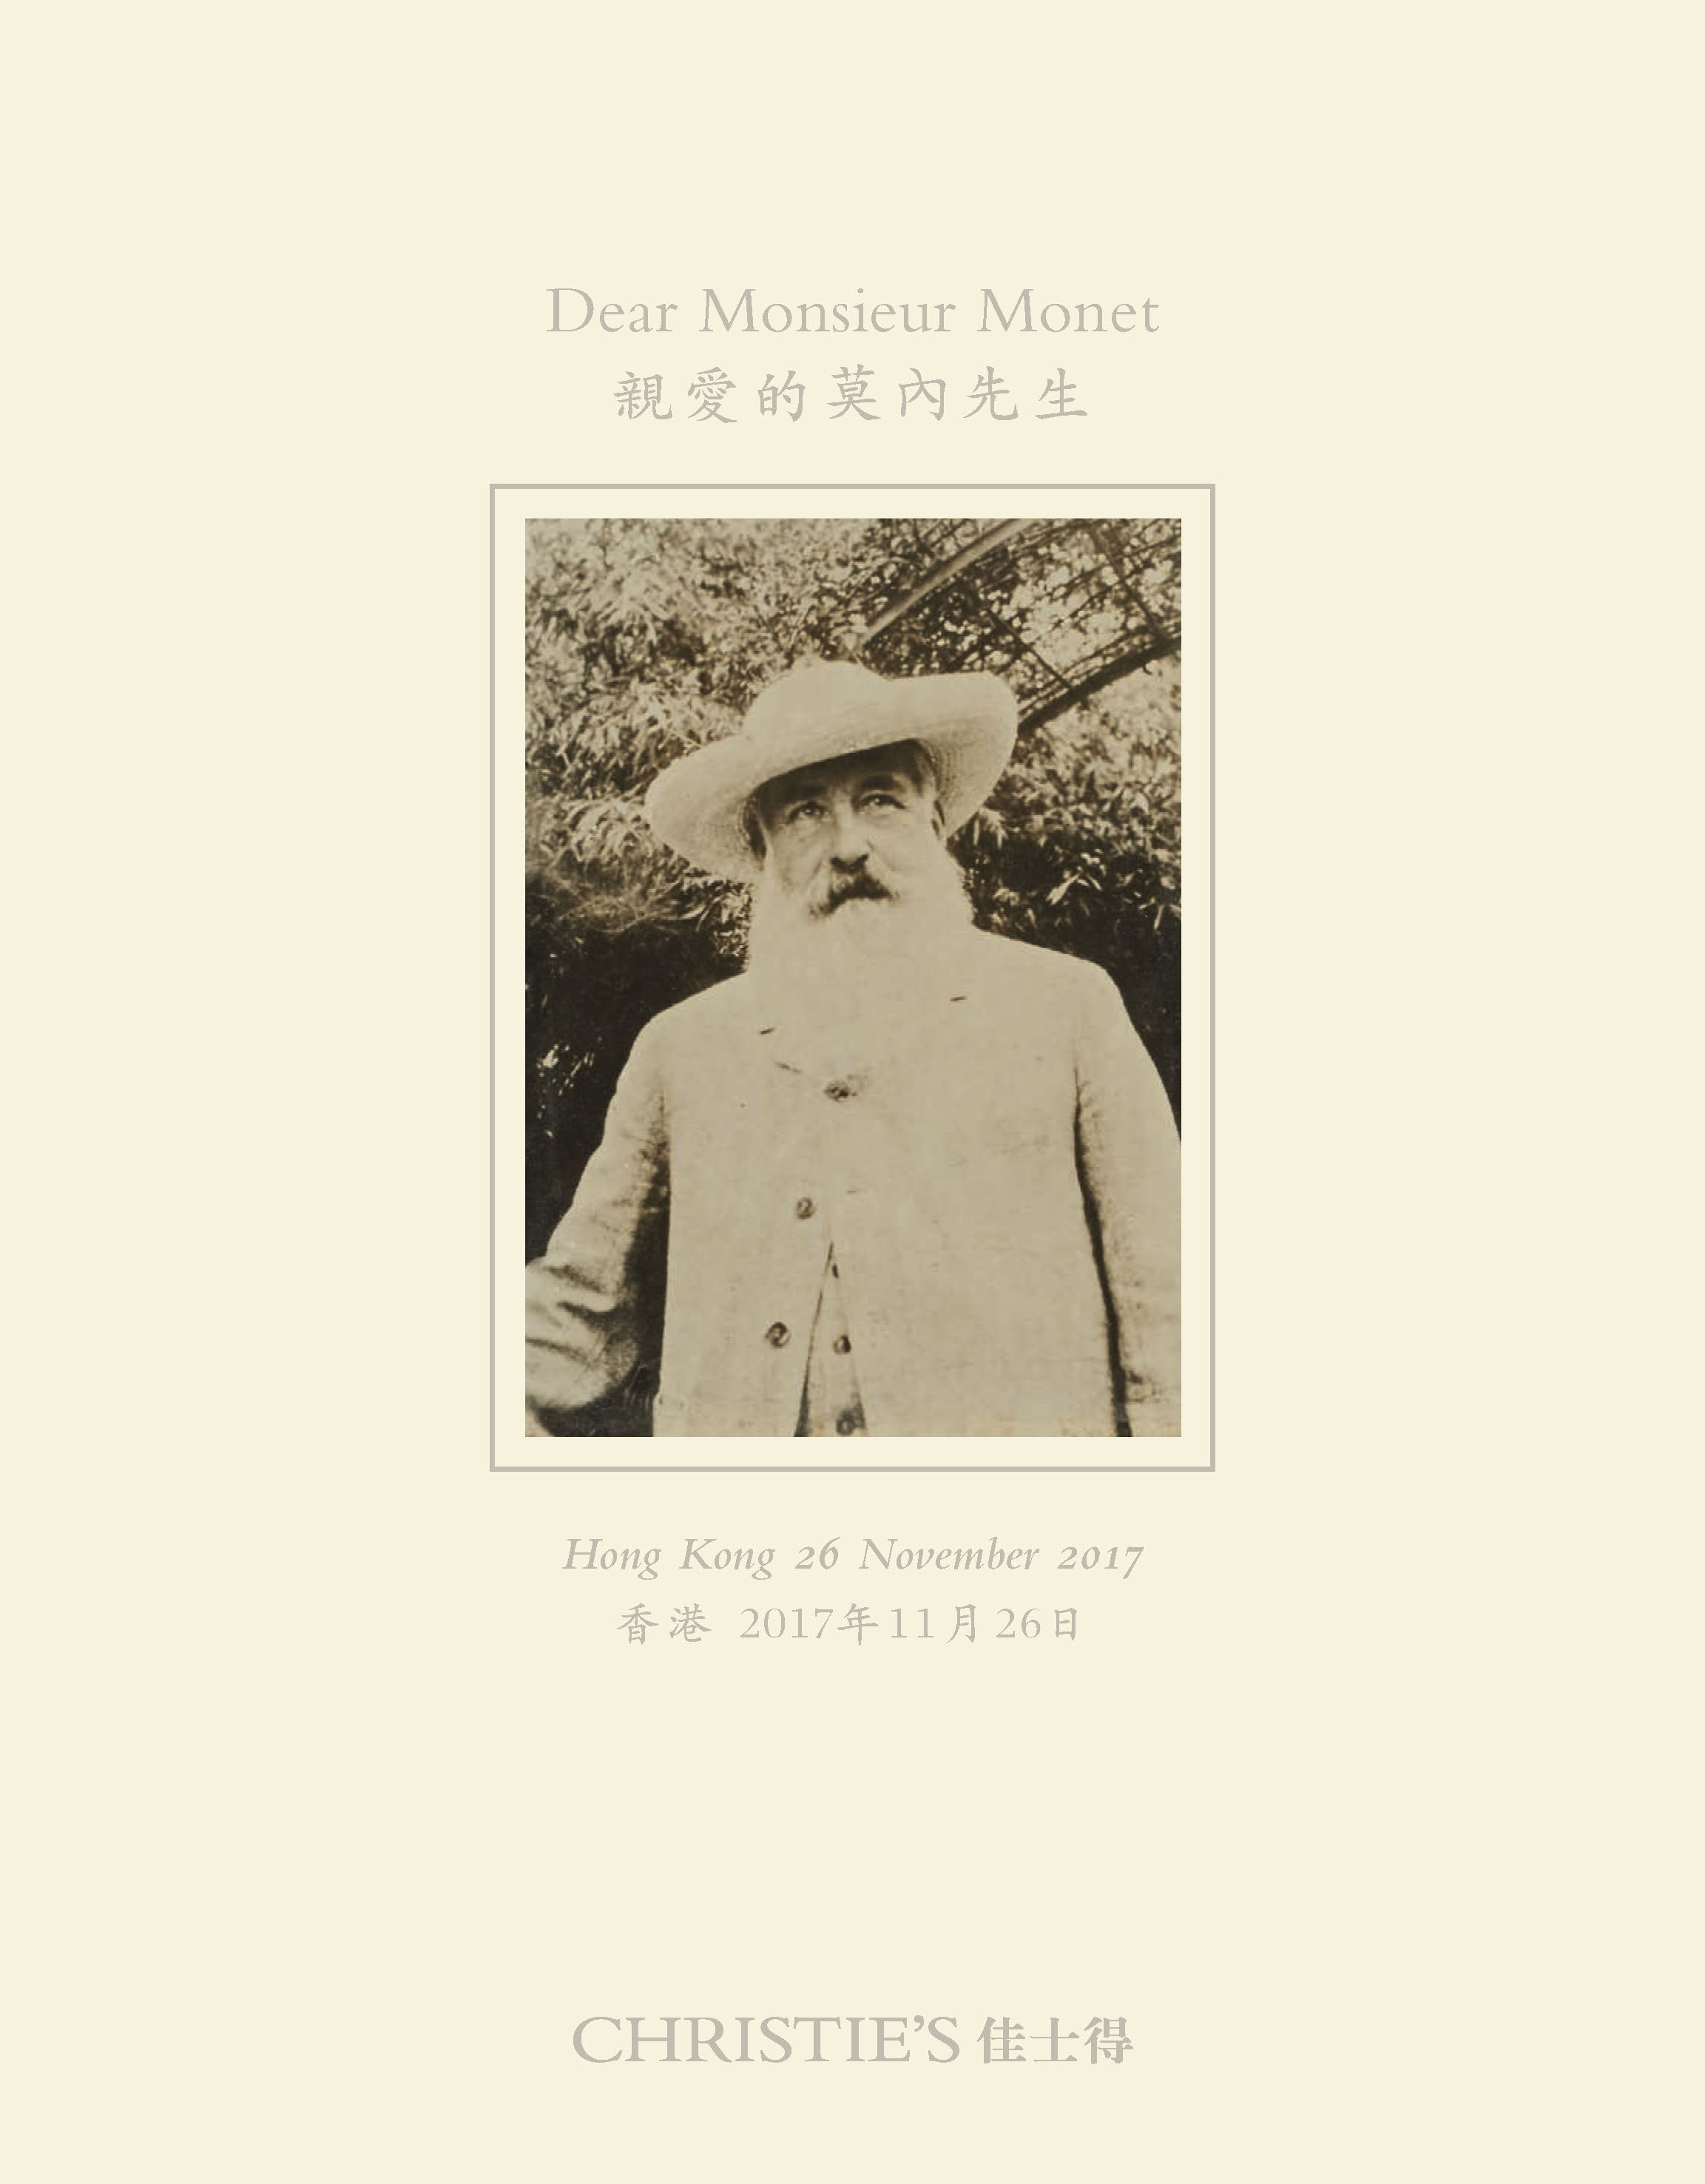 Dear Monsieur Monet